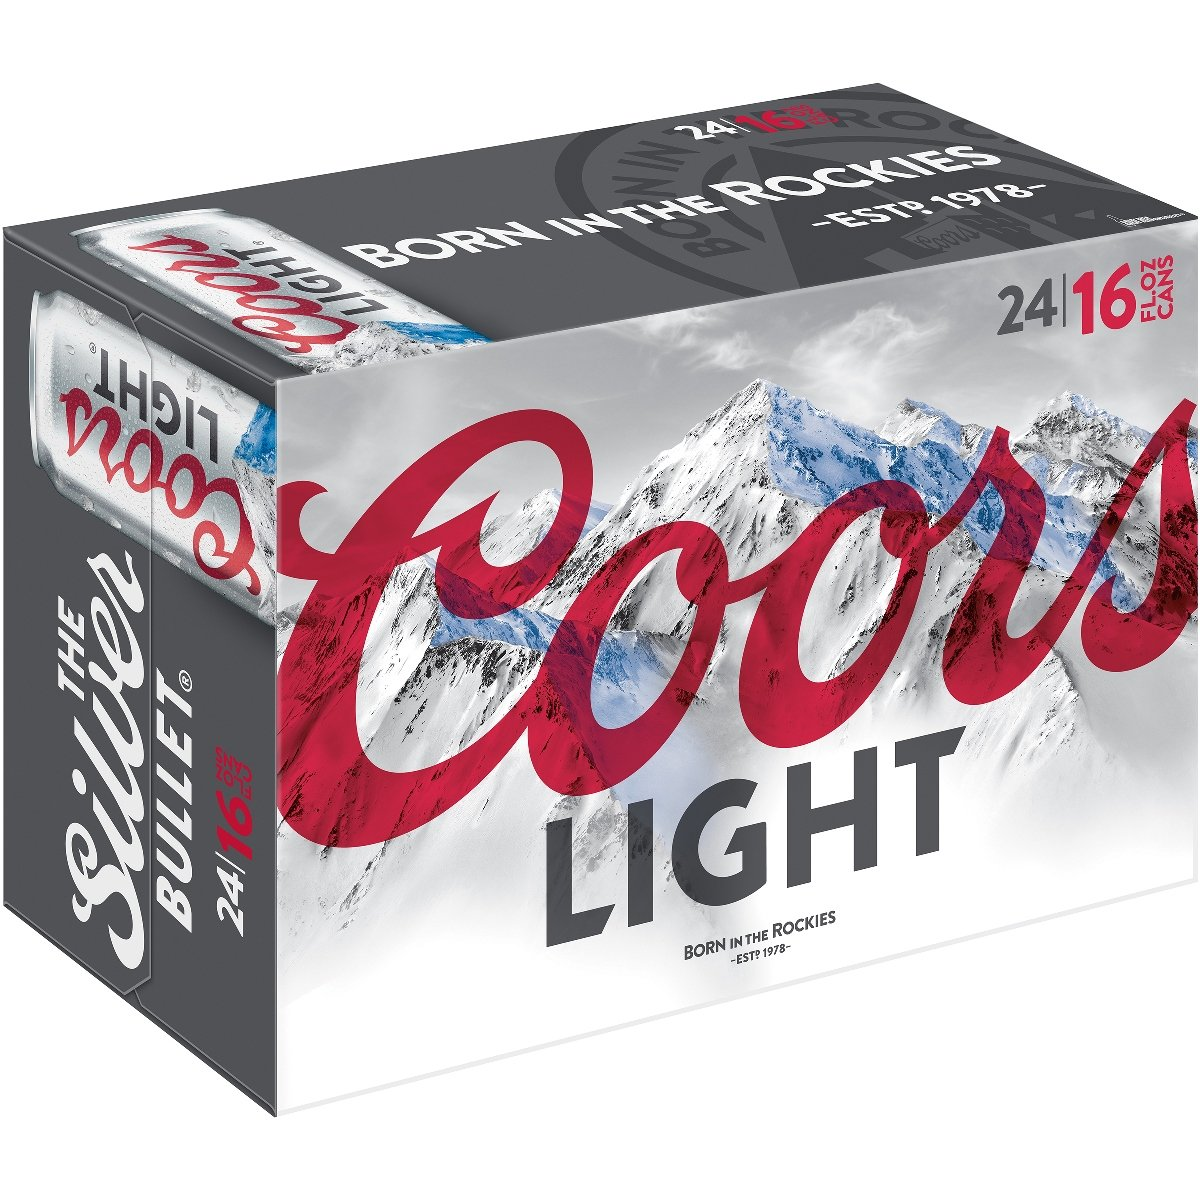 Coors Banquet Cans 16oz Beercastleny